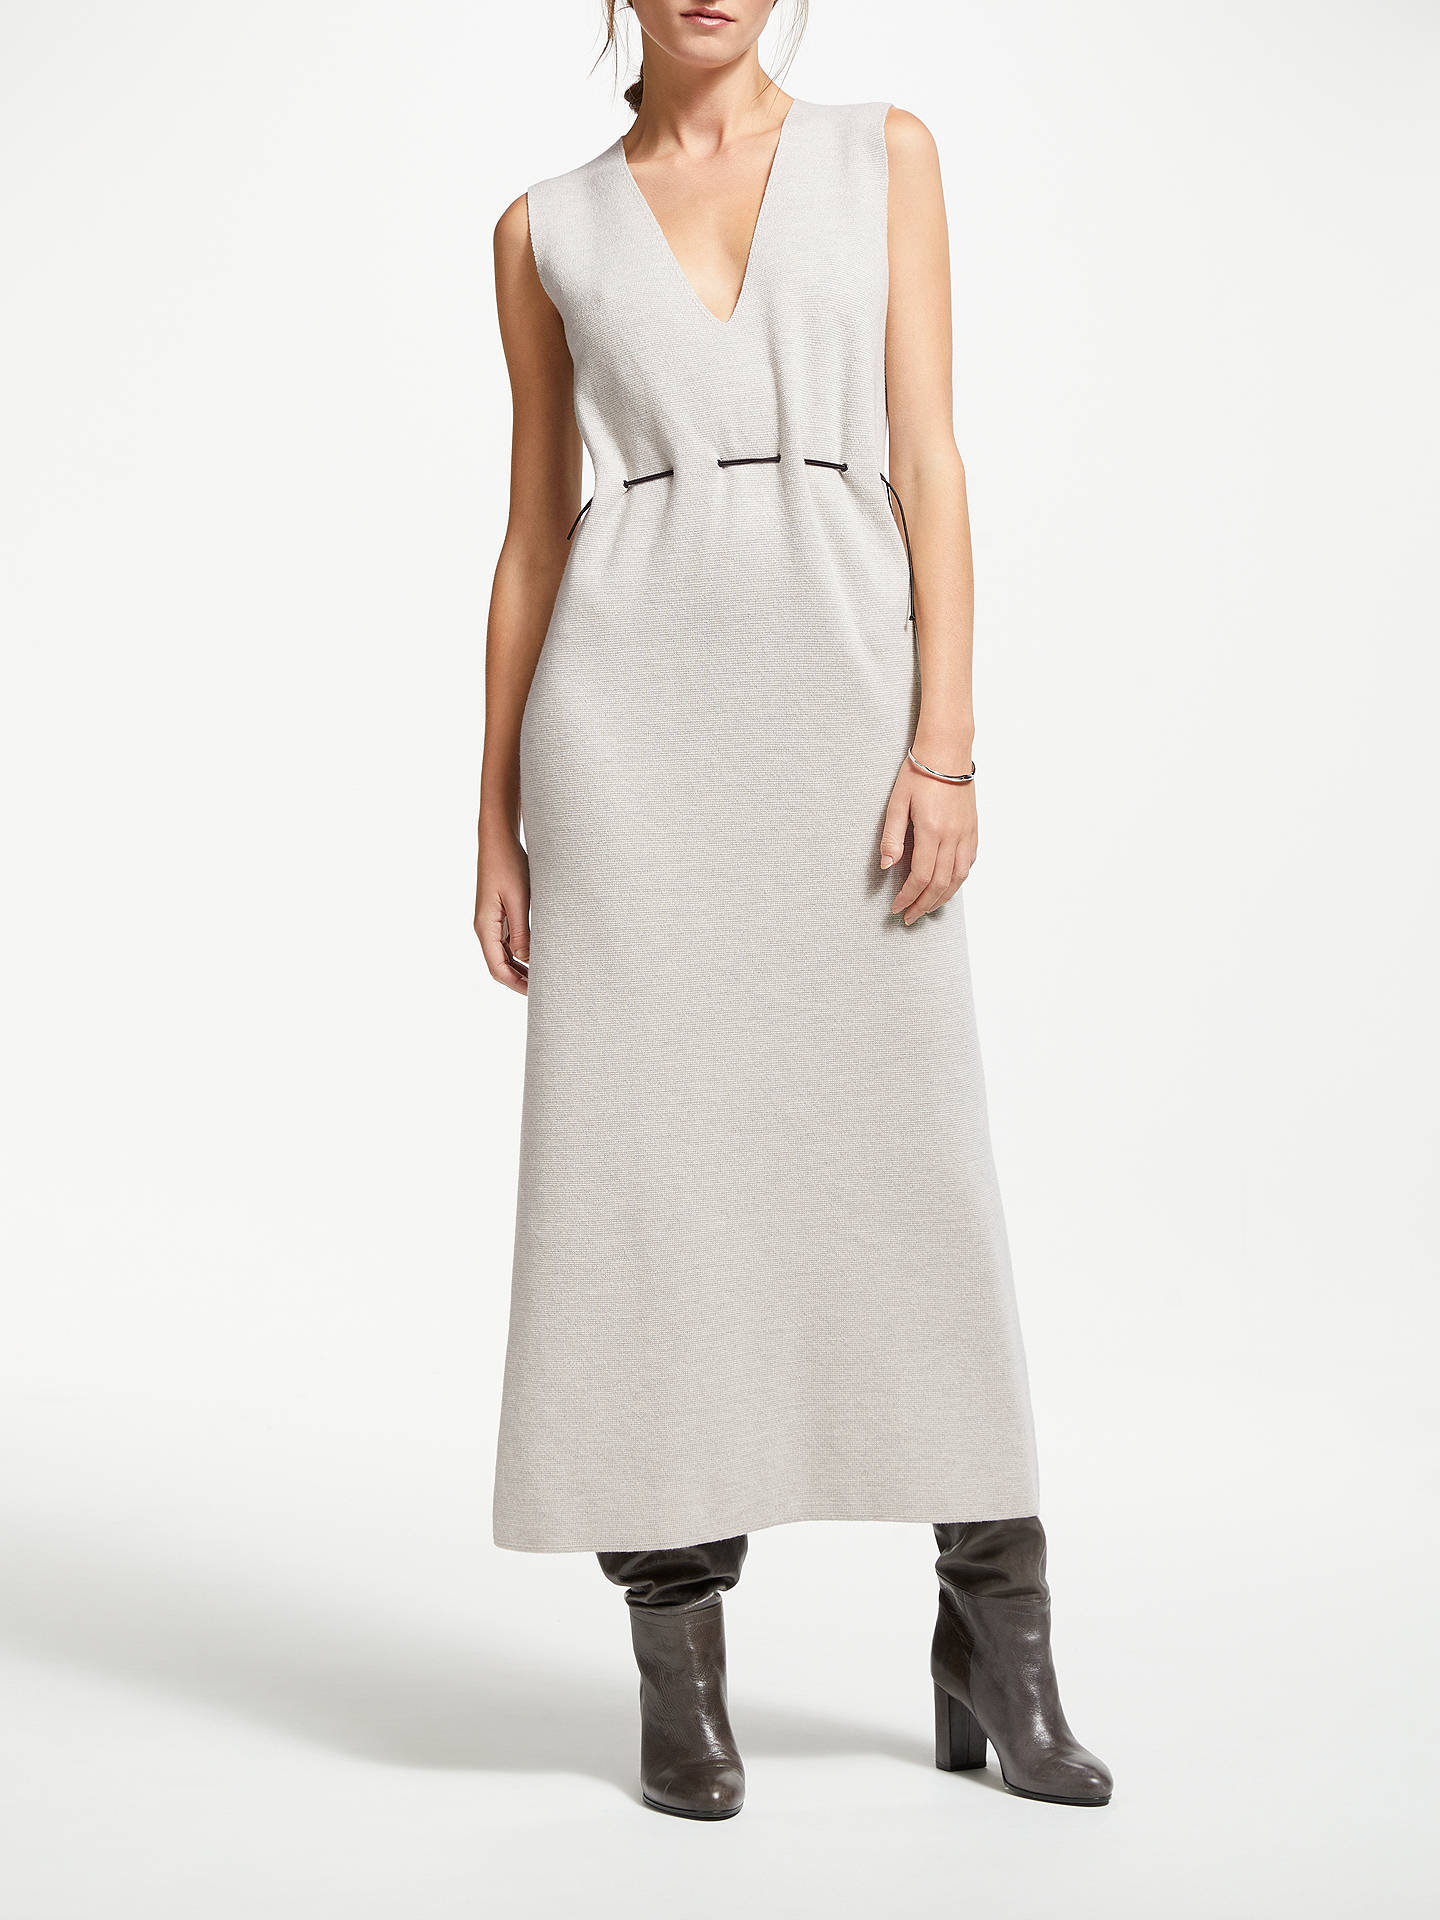 BuyModern Rarity J. JS Lee Double Faced Knitted Dress, Grey, 8 Online at johnlewis.com